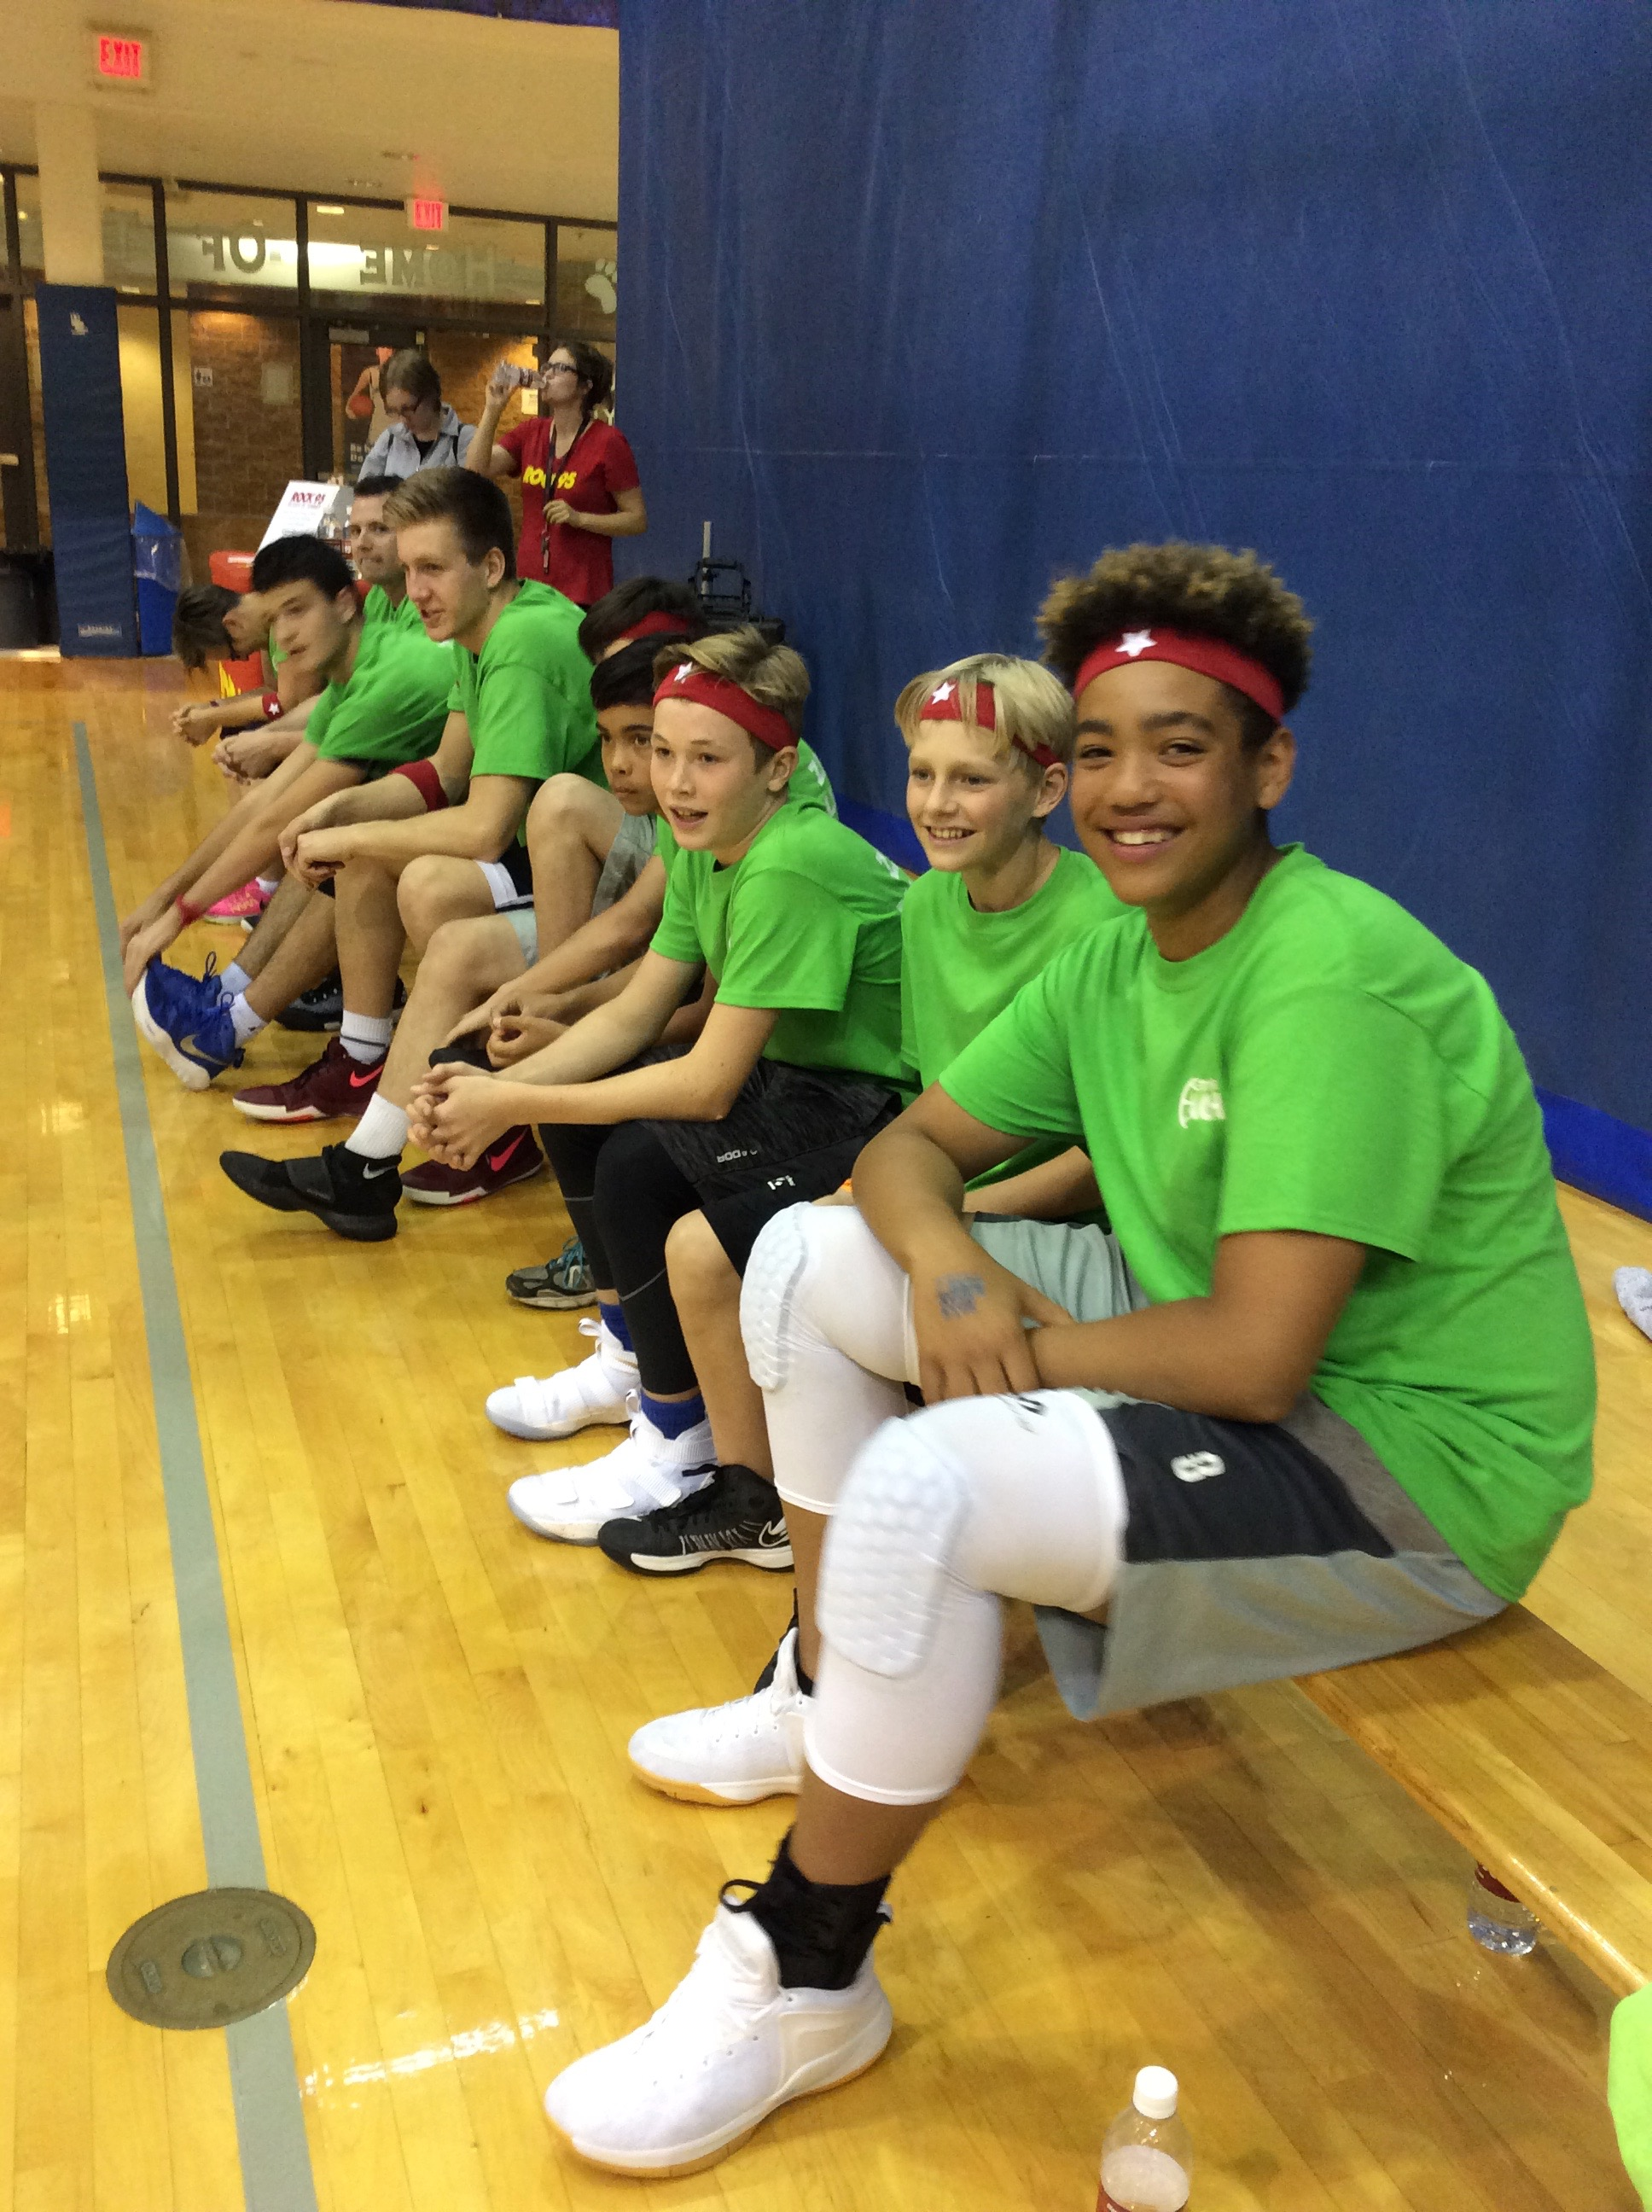 The boys - taking a quick break on the bench!